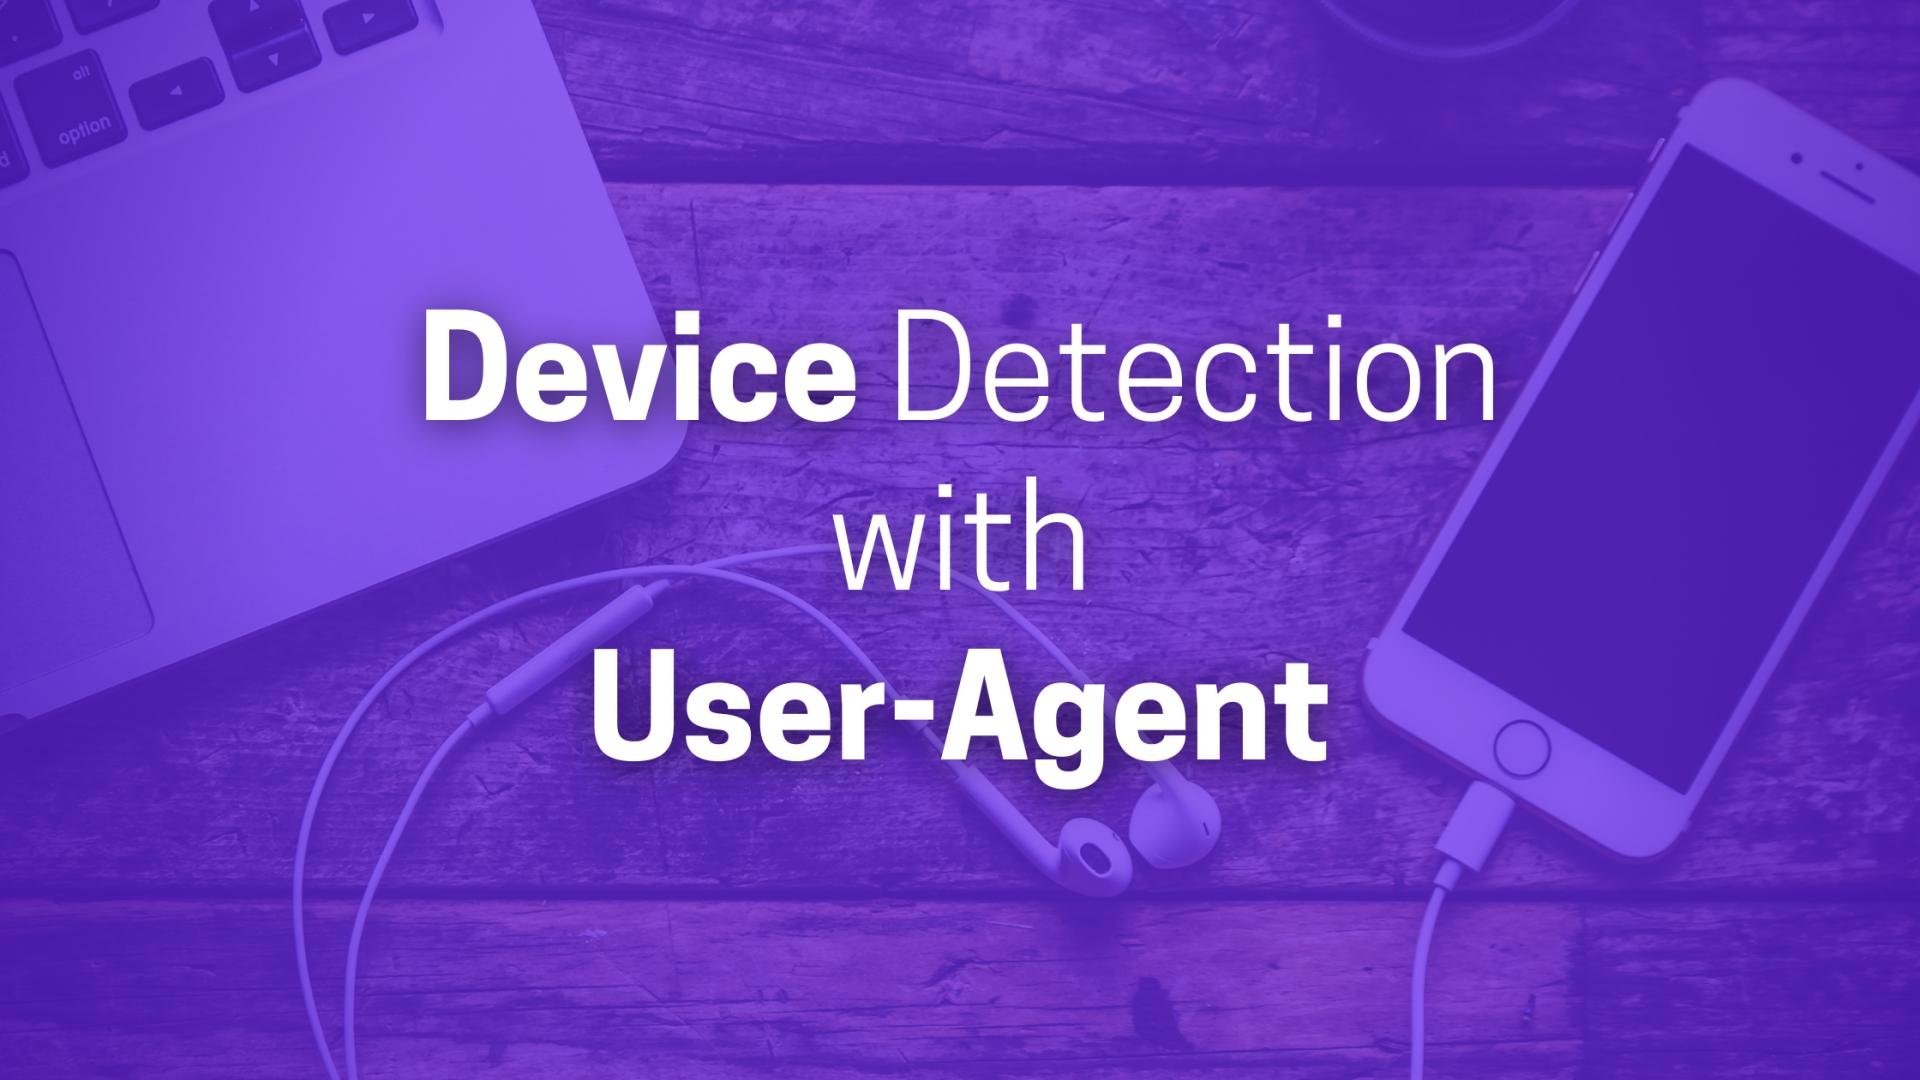 Device Detection with the User-Agent